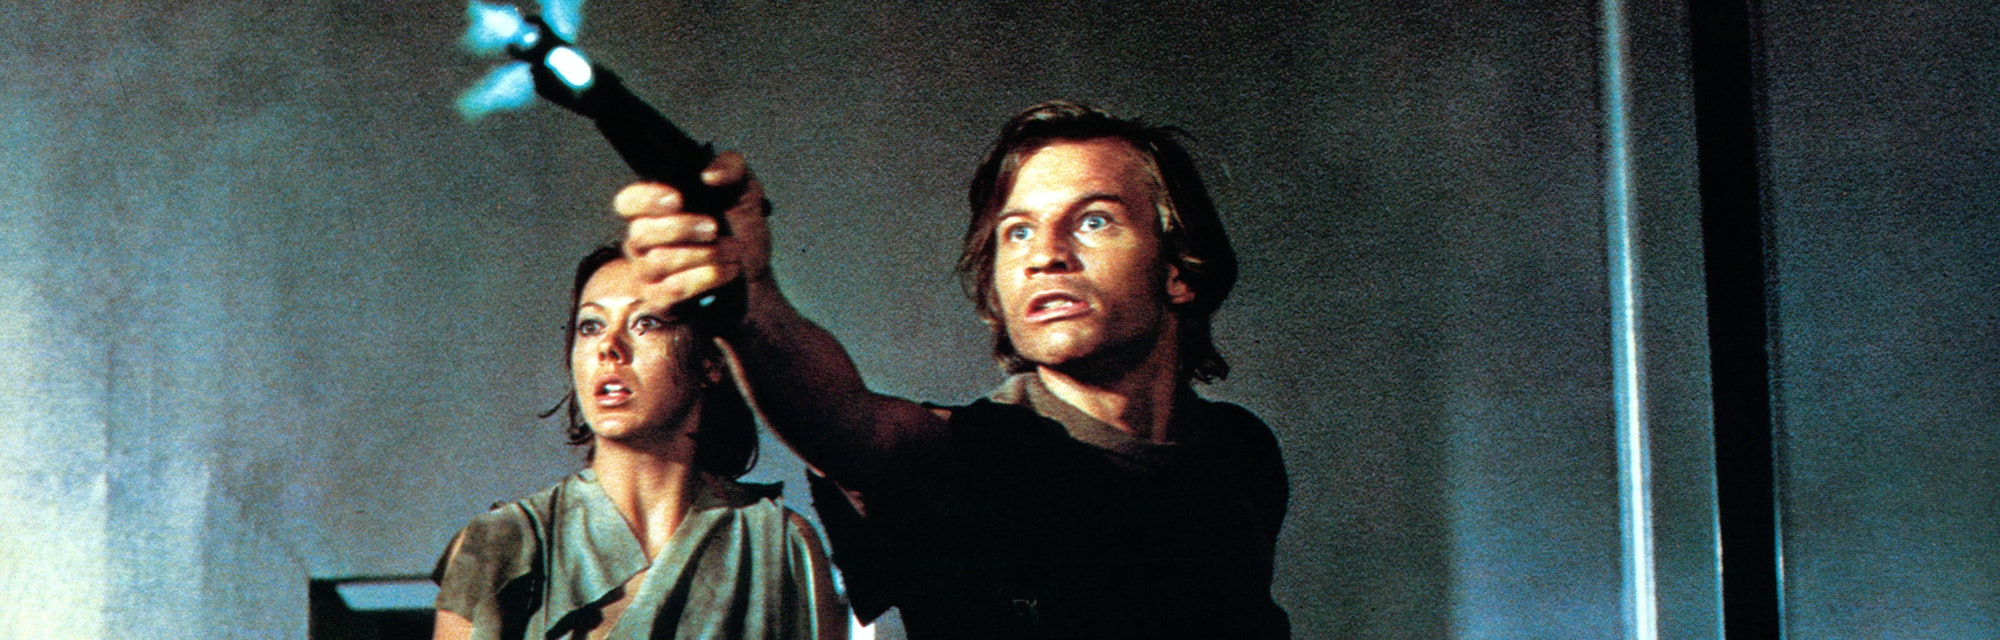 Jenny Agutter watches as Michael York shoots a gun in a scene from the film 'Logan's Run', 1976. (Ph...